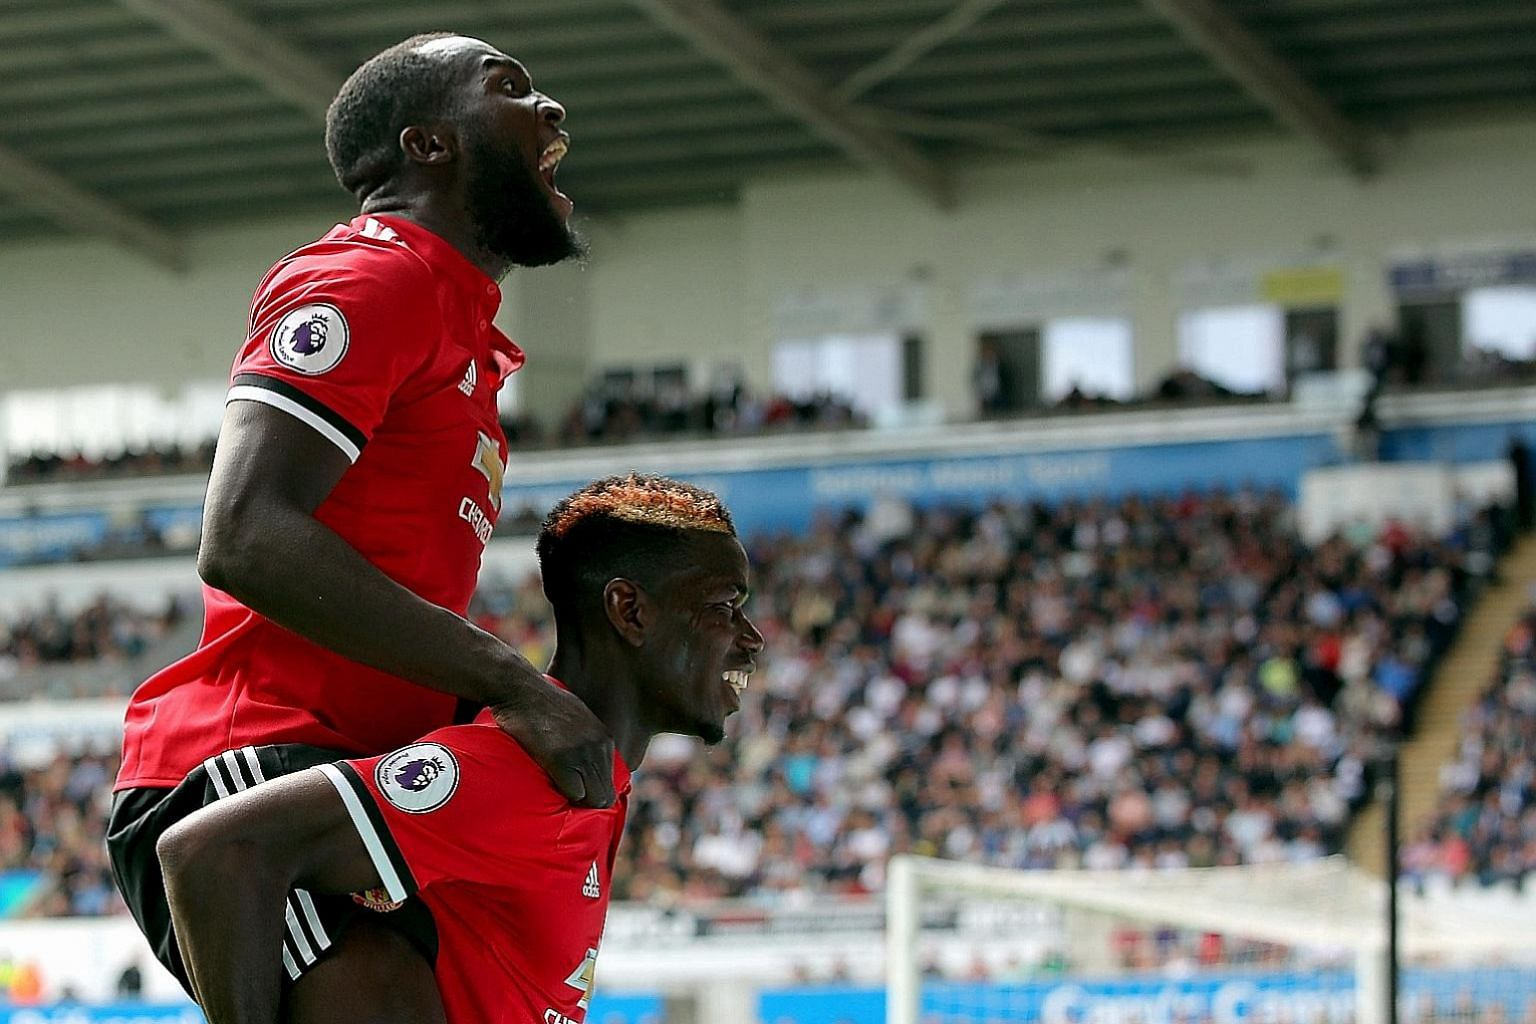 Manchester United's Paul Pogba celebrates his goal with Romelu Lukaku (top) after making it 3-0 against Swansea at the Liberty Stadium. Lukaku was also on the scoresheet, with United winning 4-0.